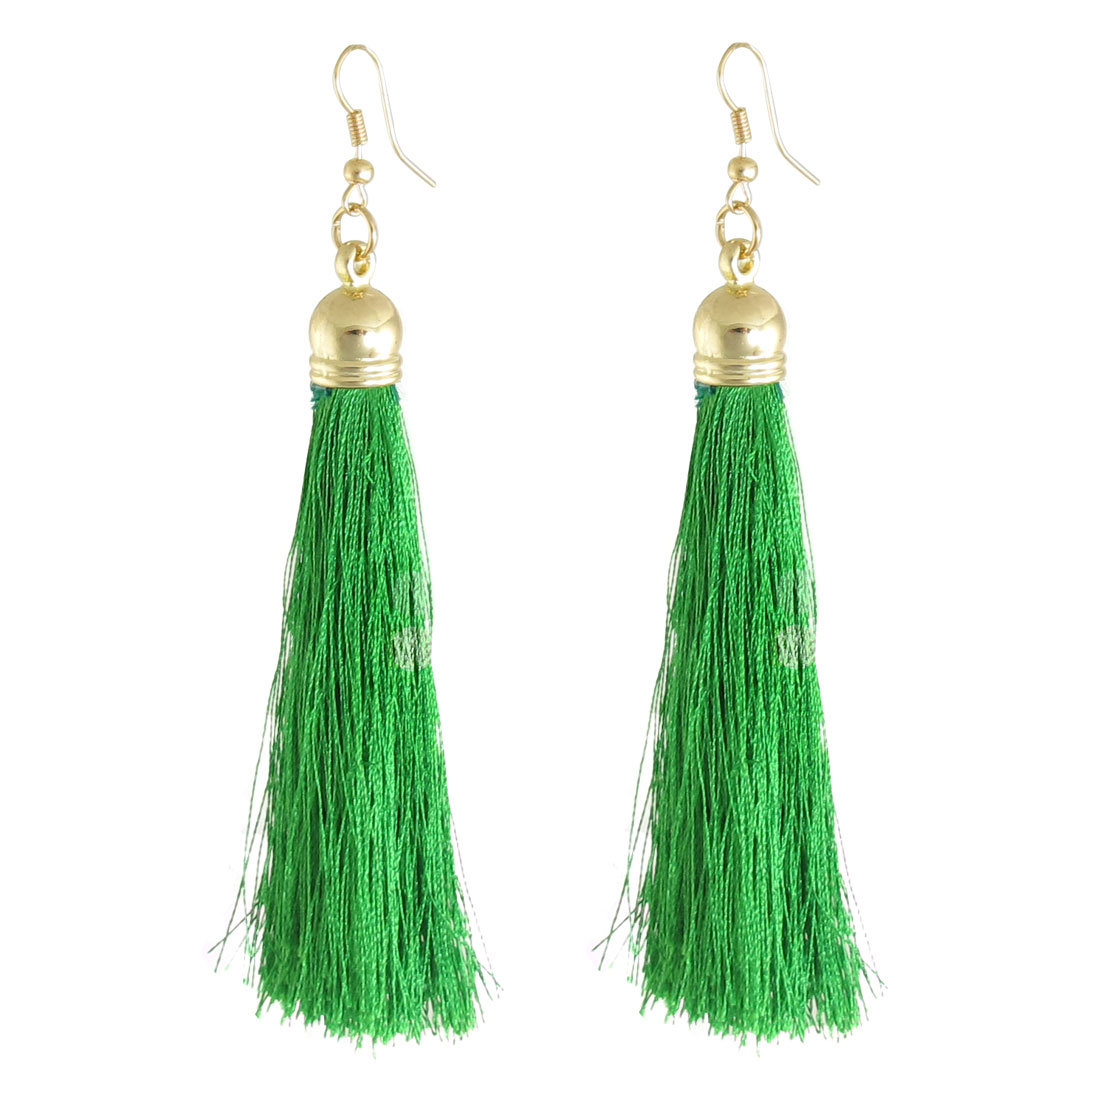 Pair Ladies Girl Green Nylon Tassel Pendant Dangling Eardrop Earrings